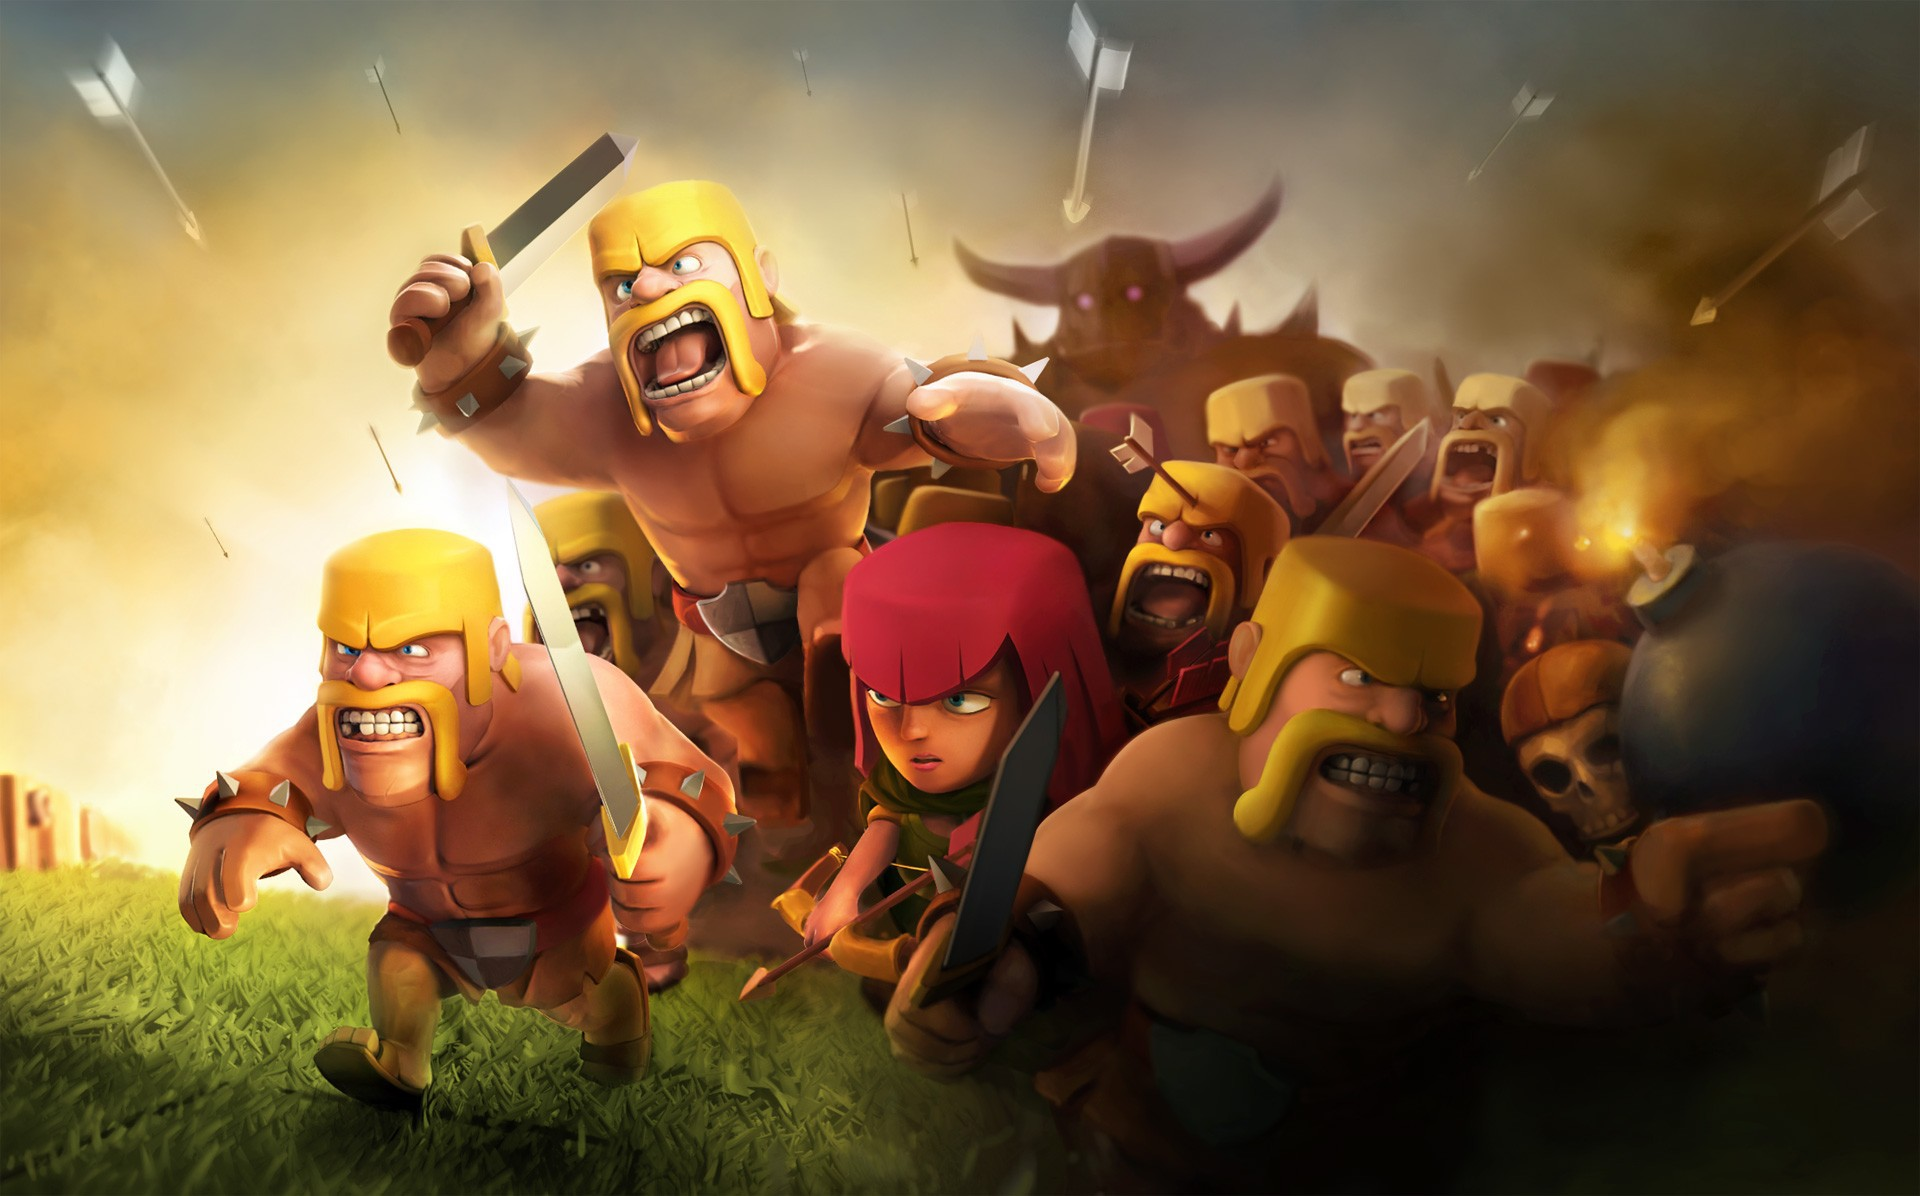 Clash Of Clans Wallpapers Images Photos Pictures Backgrounds 1920x1196